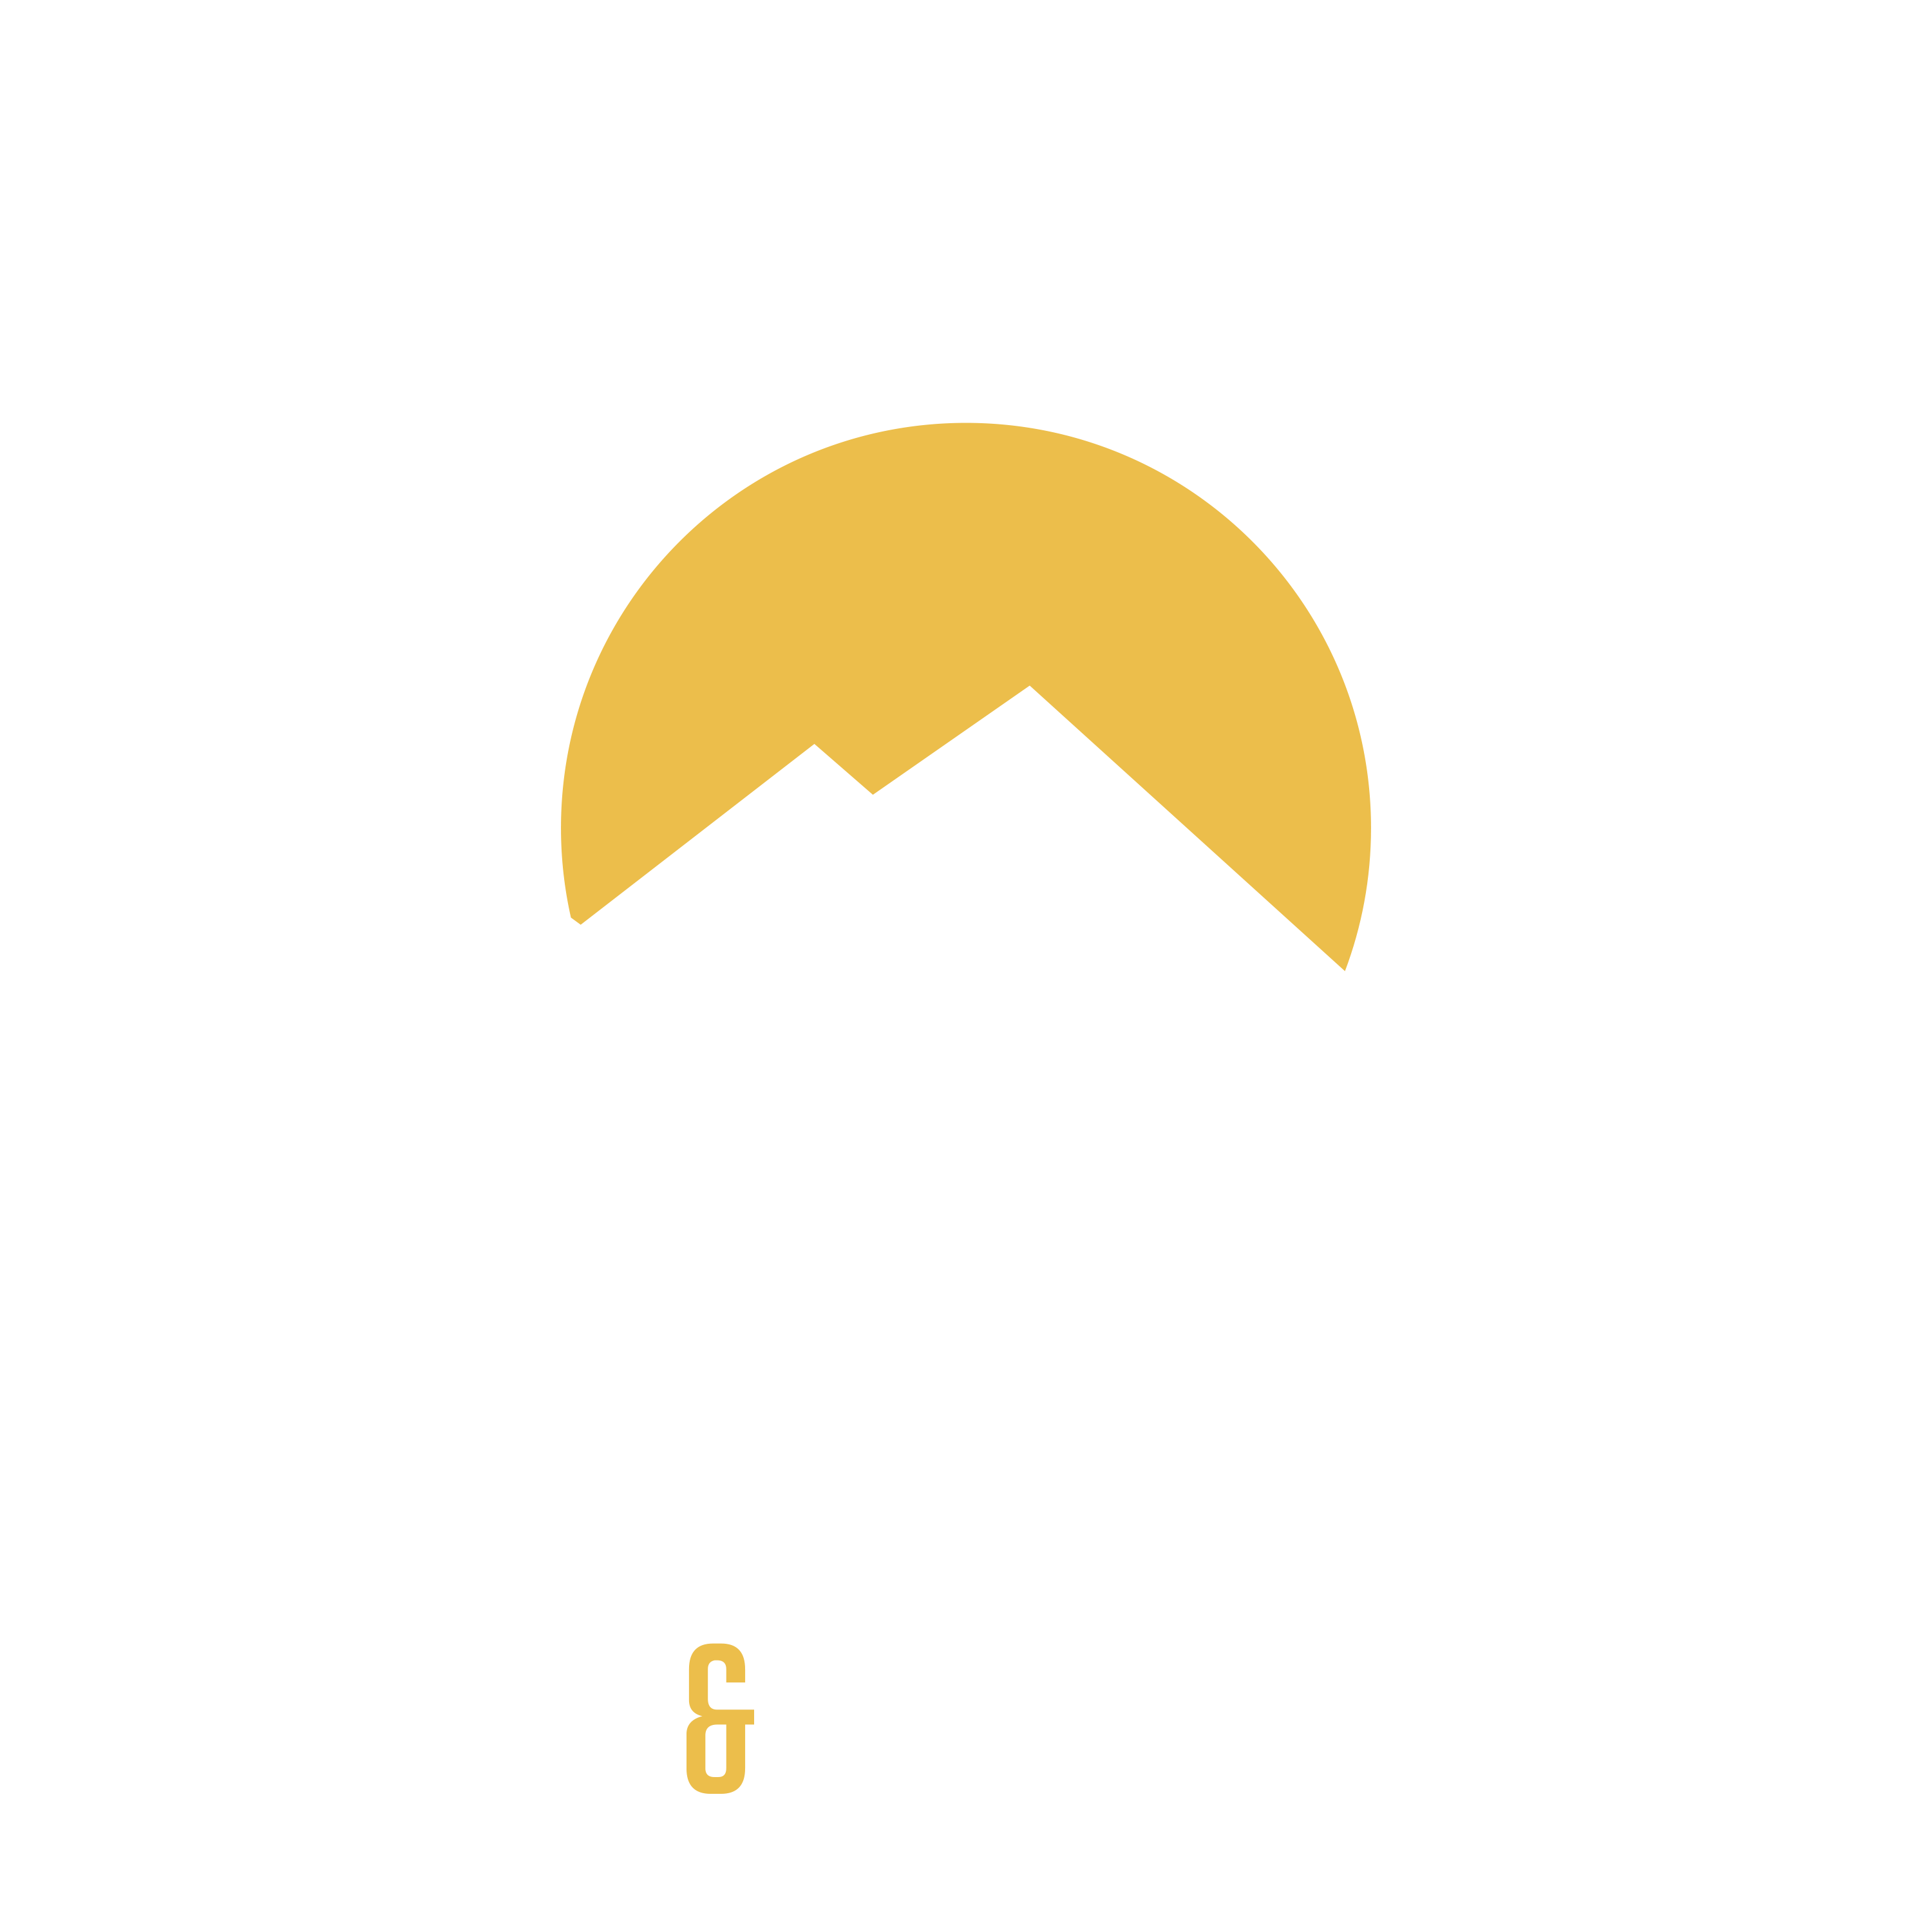 Orfordnature.com